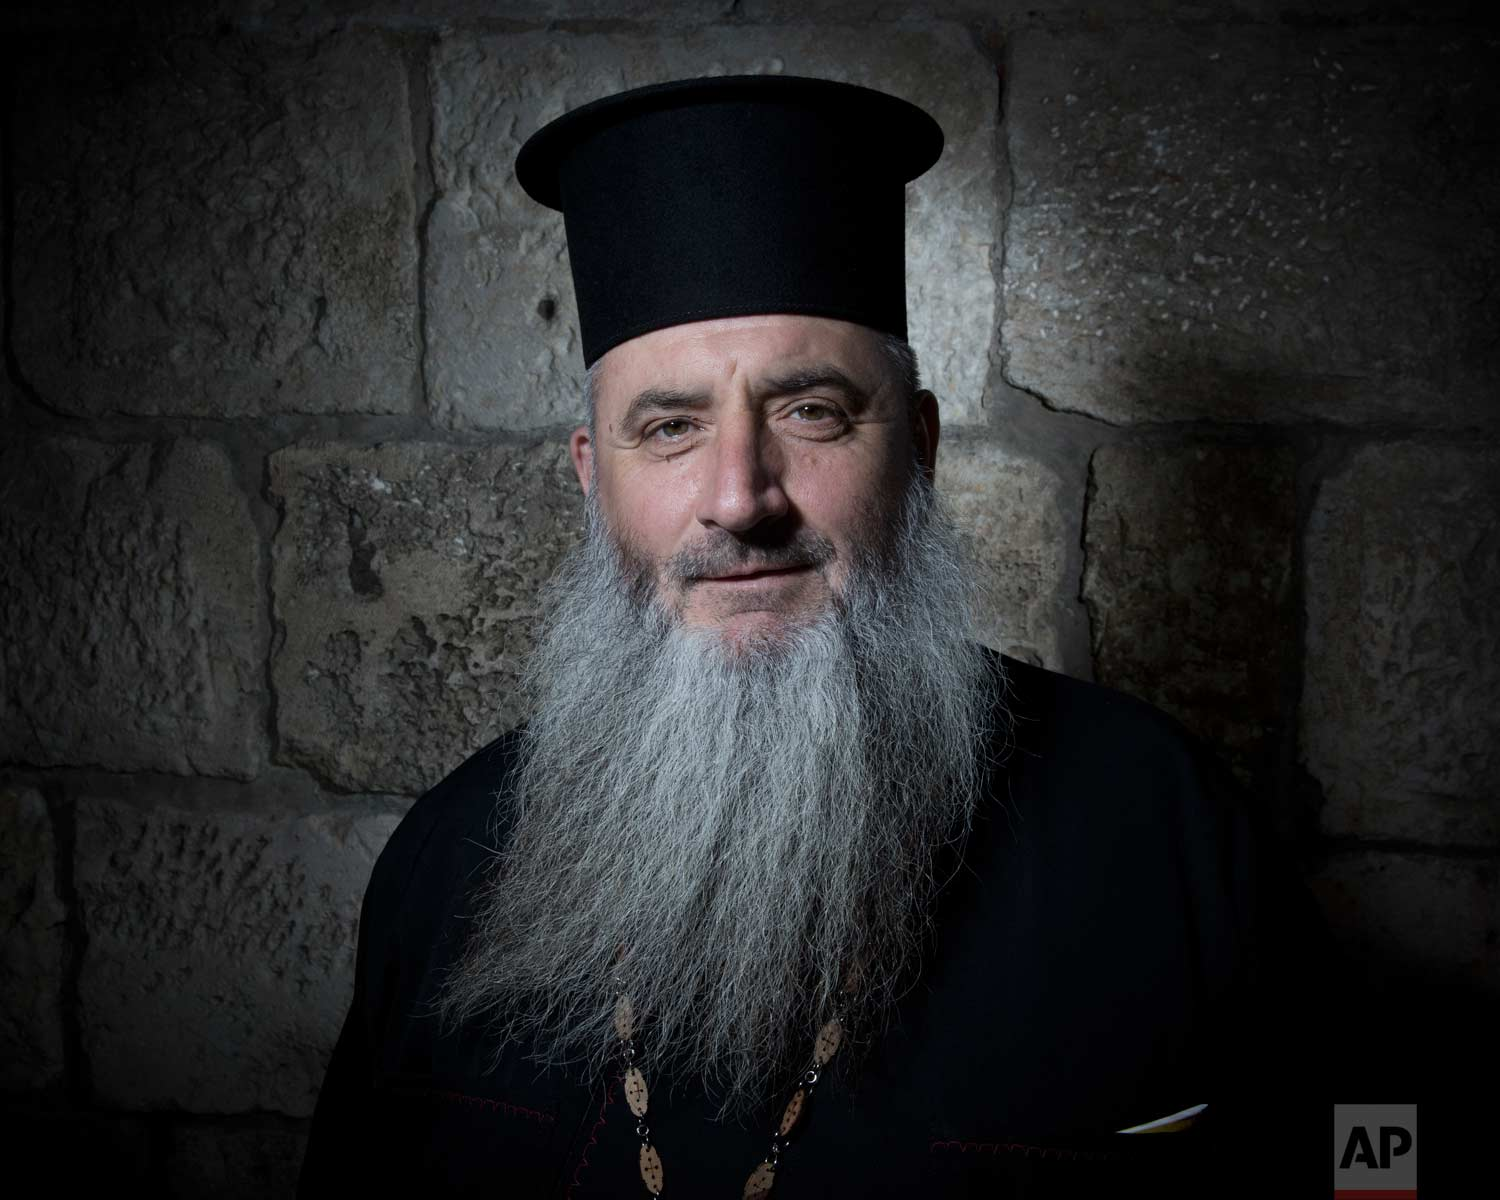 In this Sunday, Feb. 11, 2018 photo, Father Boris Manov poses for a portrait in Jerusalem's Old City. (AP Photo/Oded Balilty)